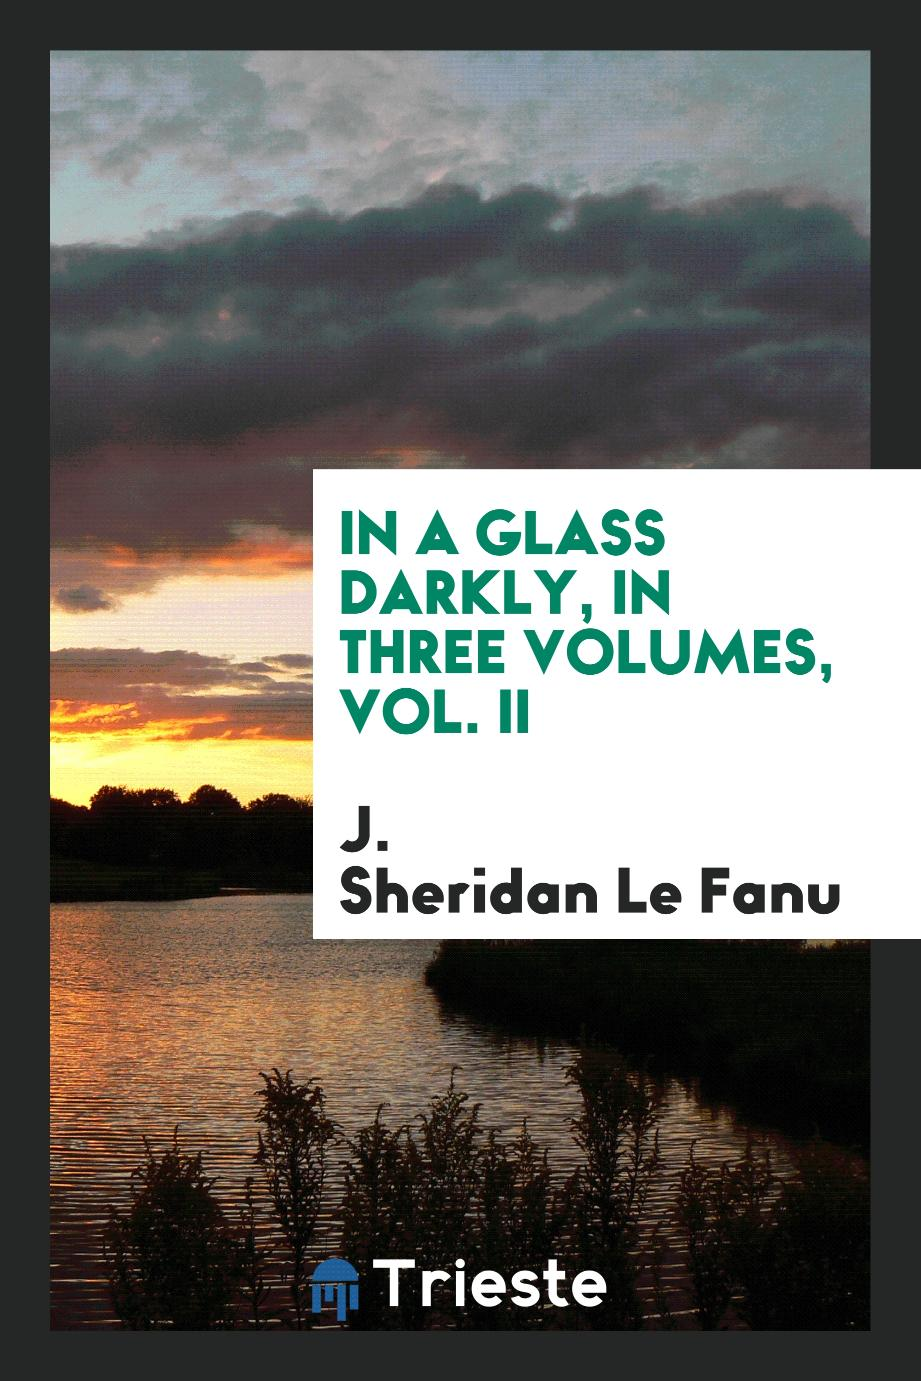 In a Glass Darkly, in Three Volumes, Vol. II